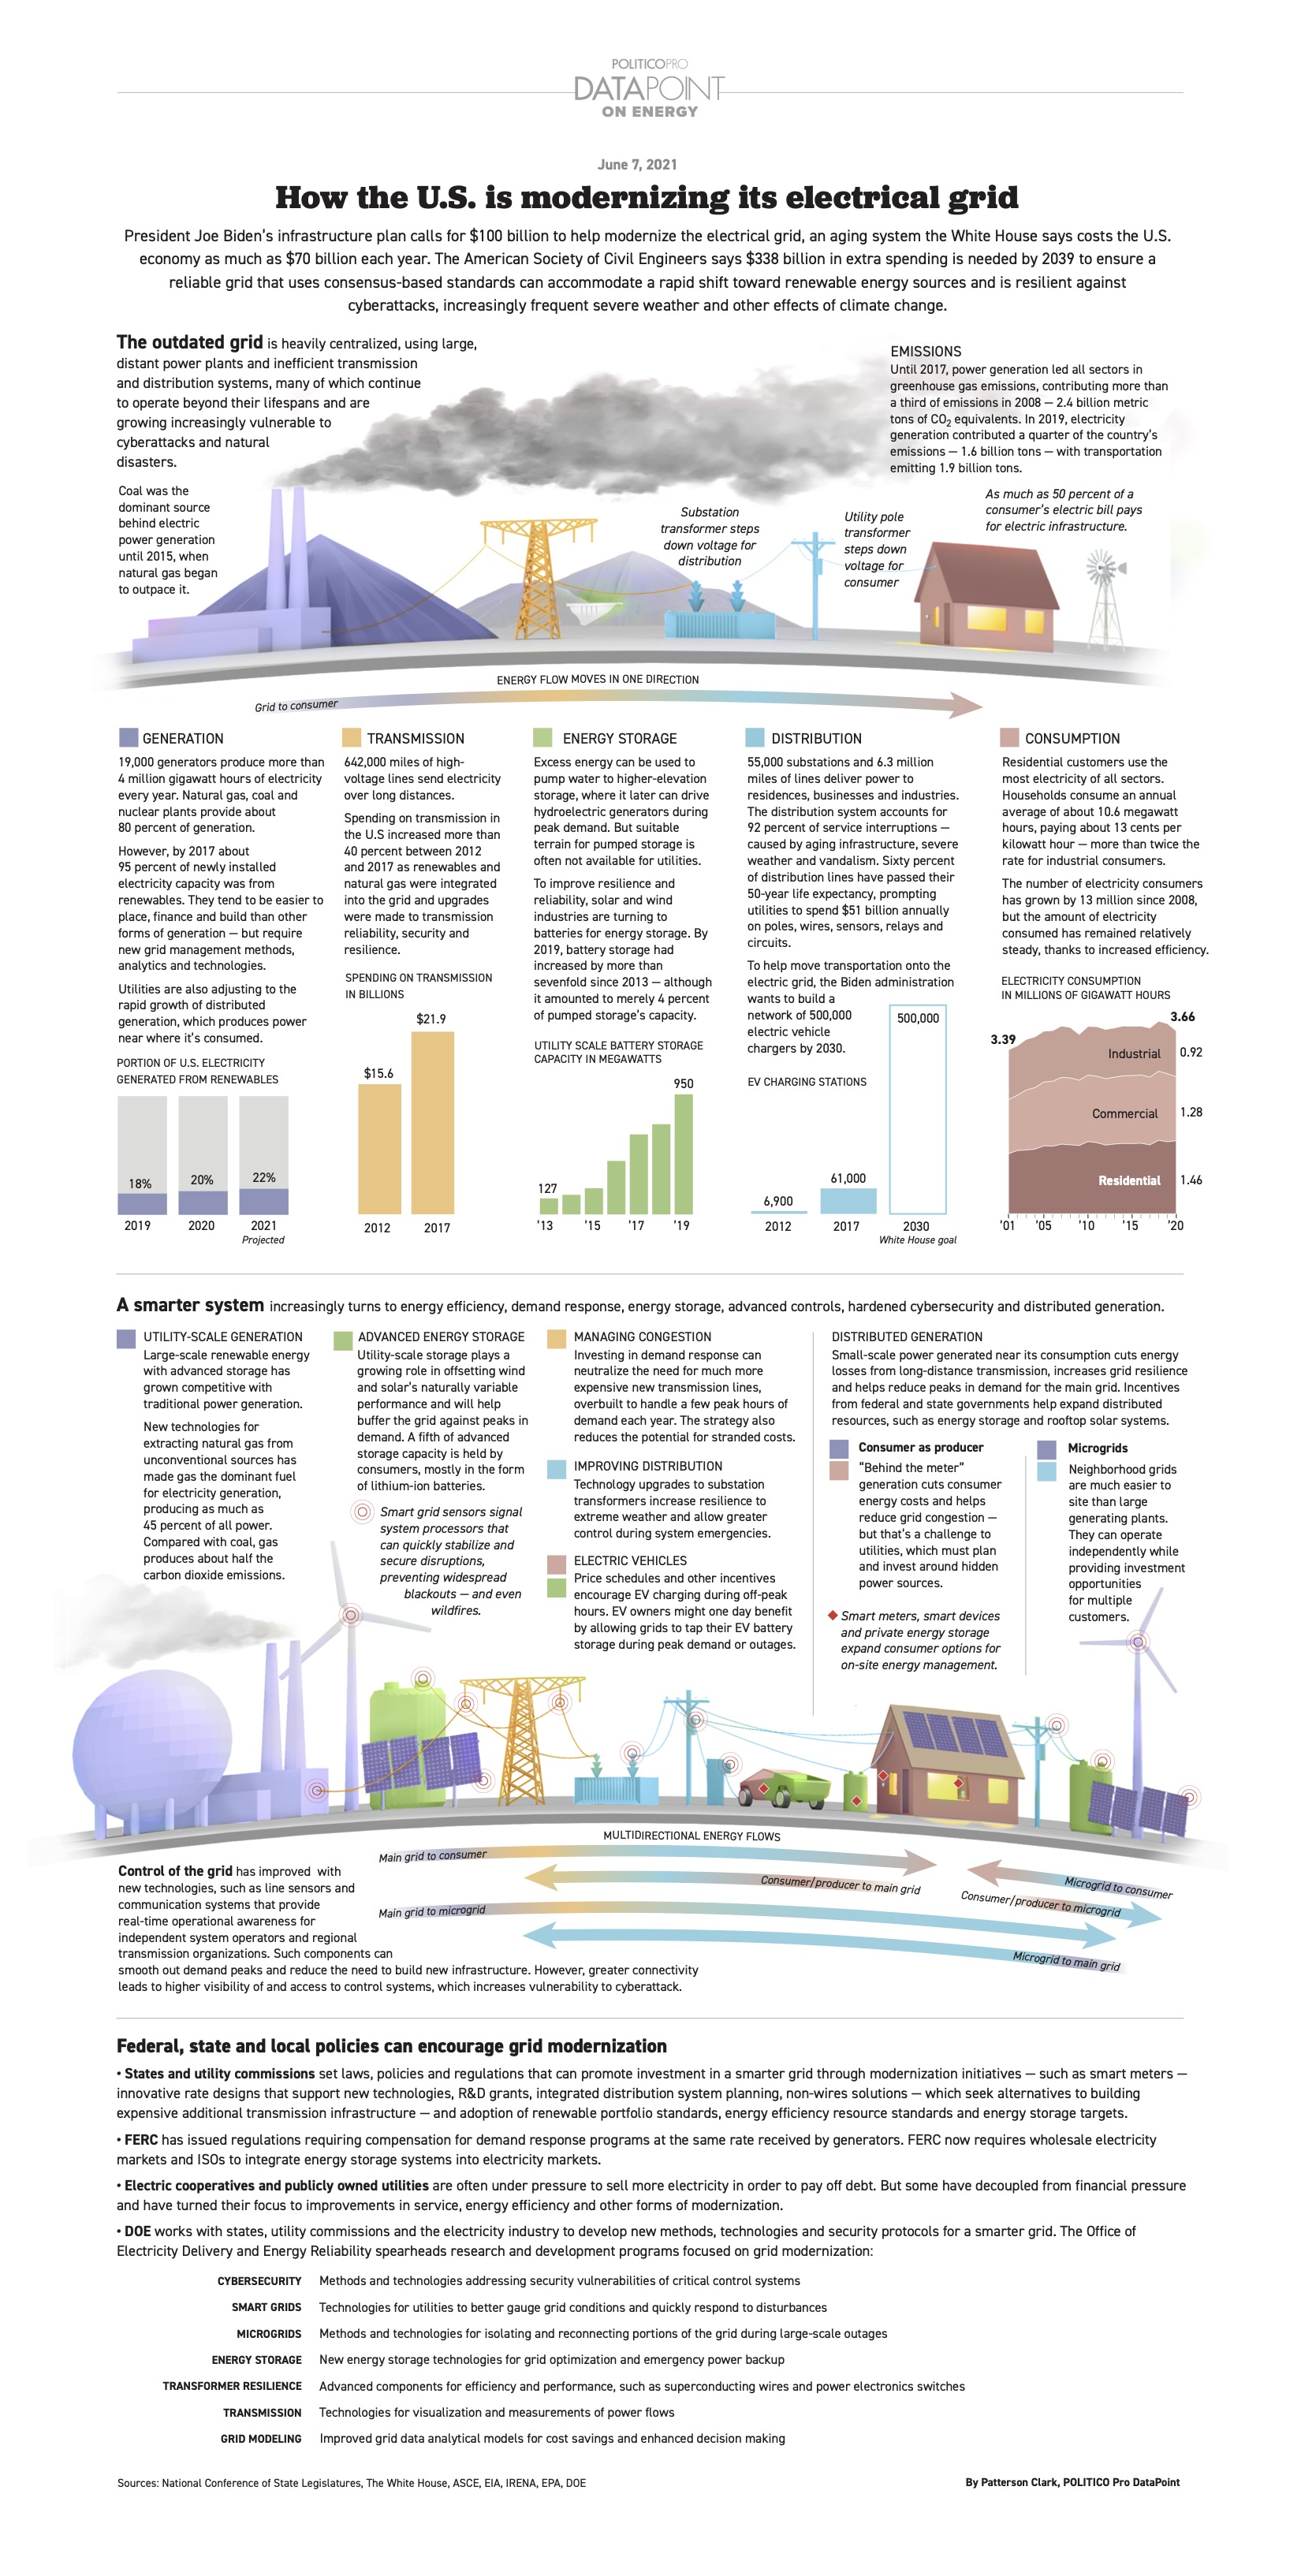 how-the-us-is-modernizing-its-electrical-grid